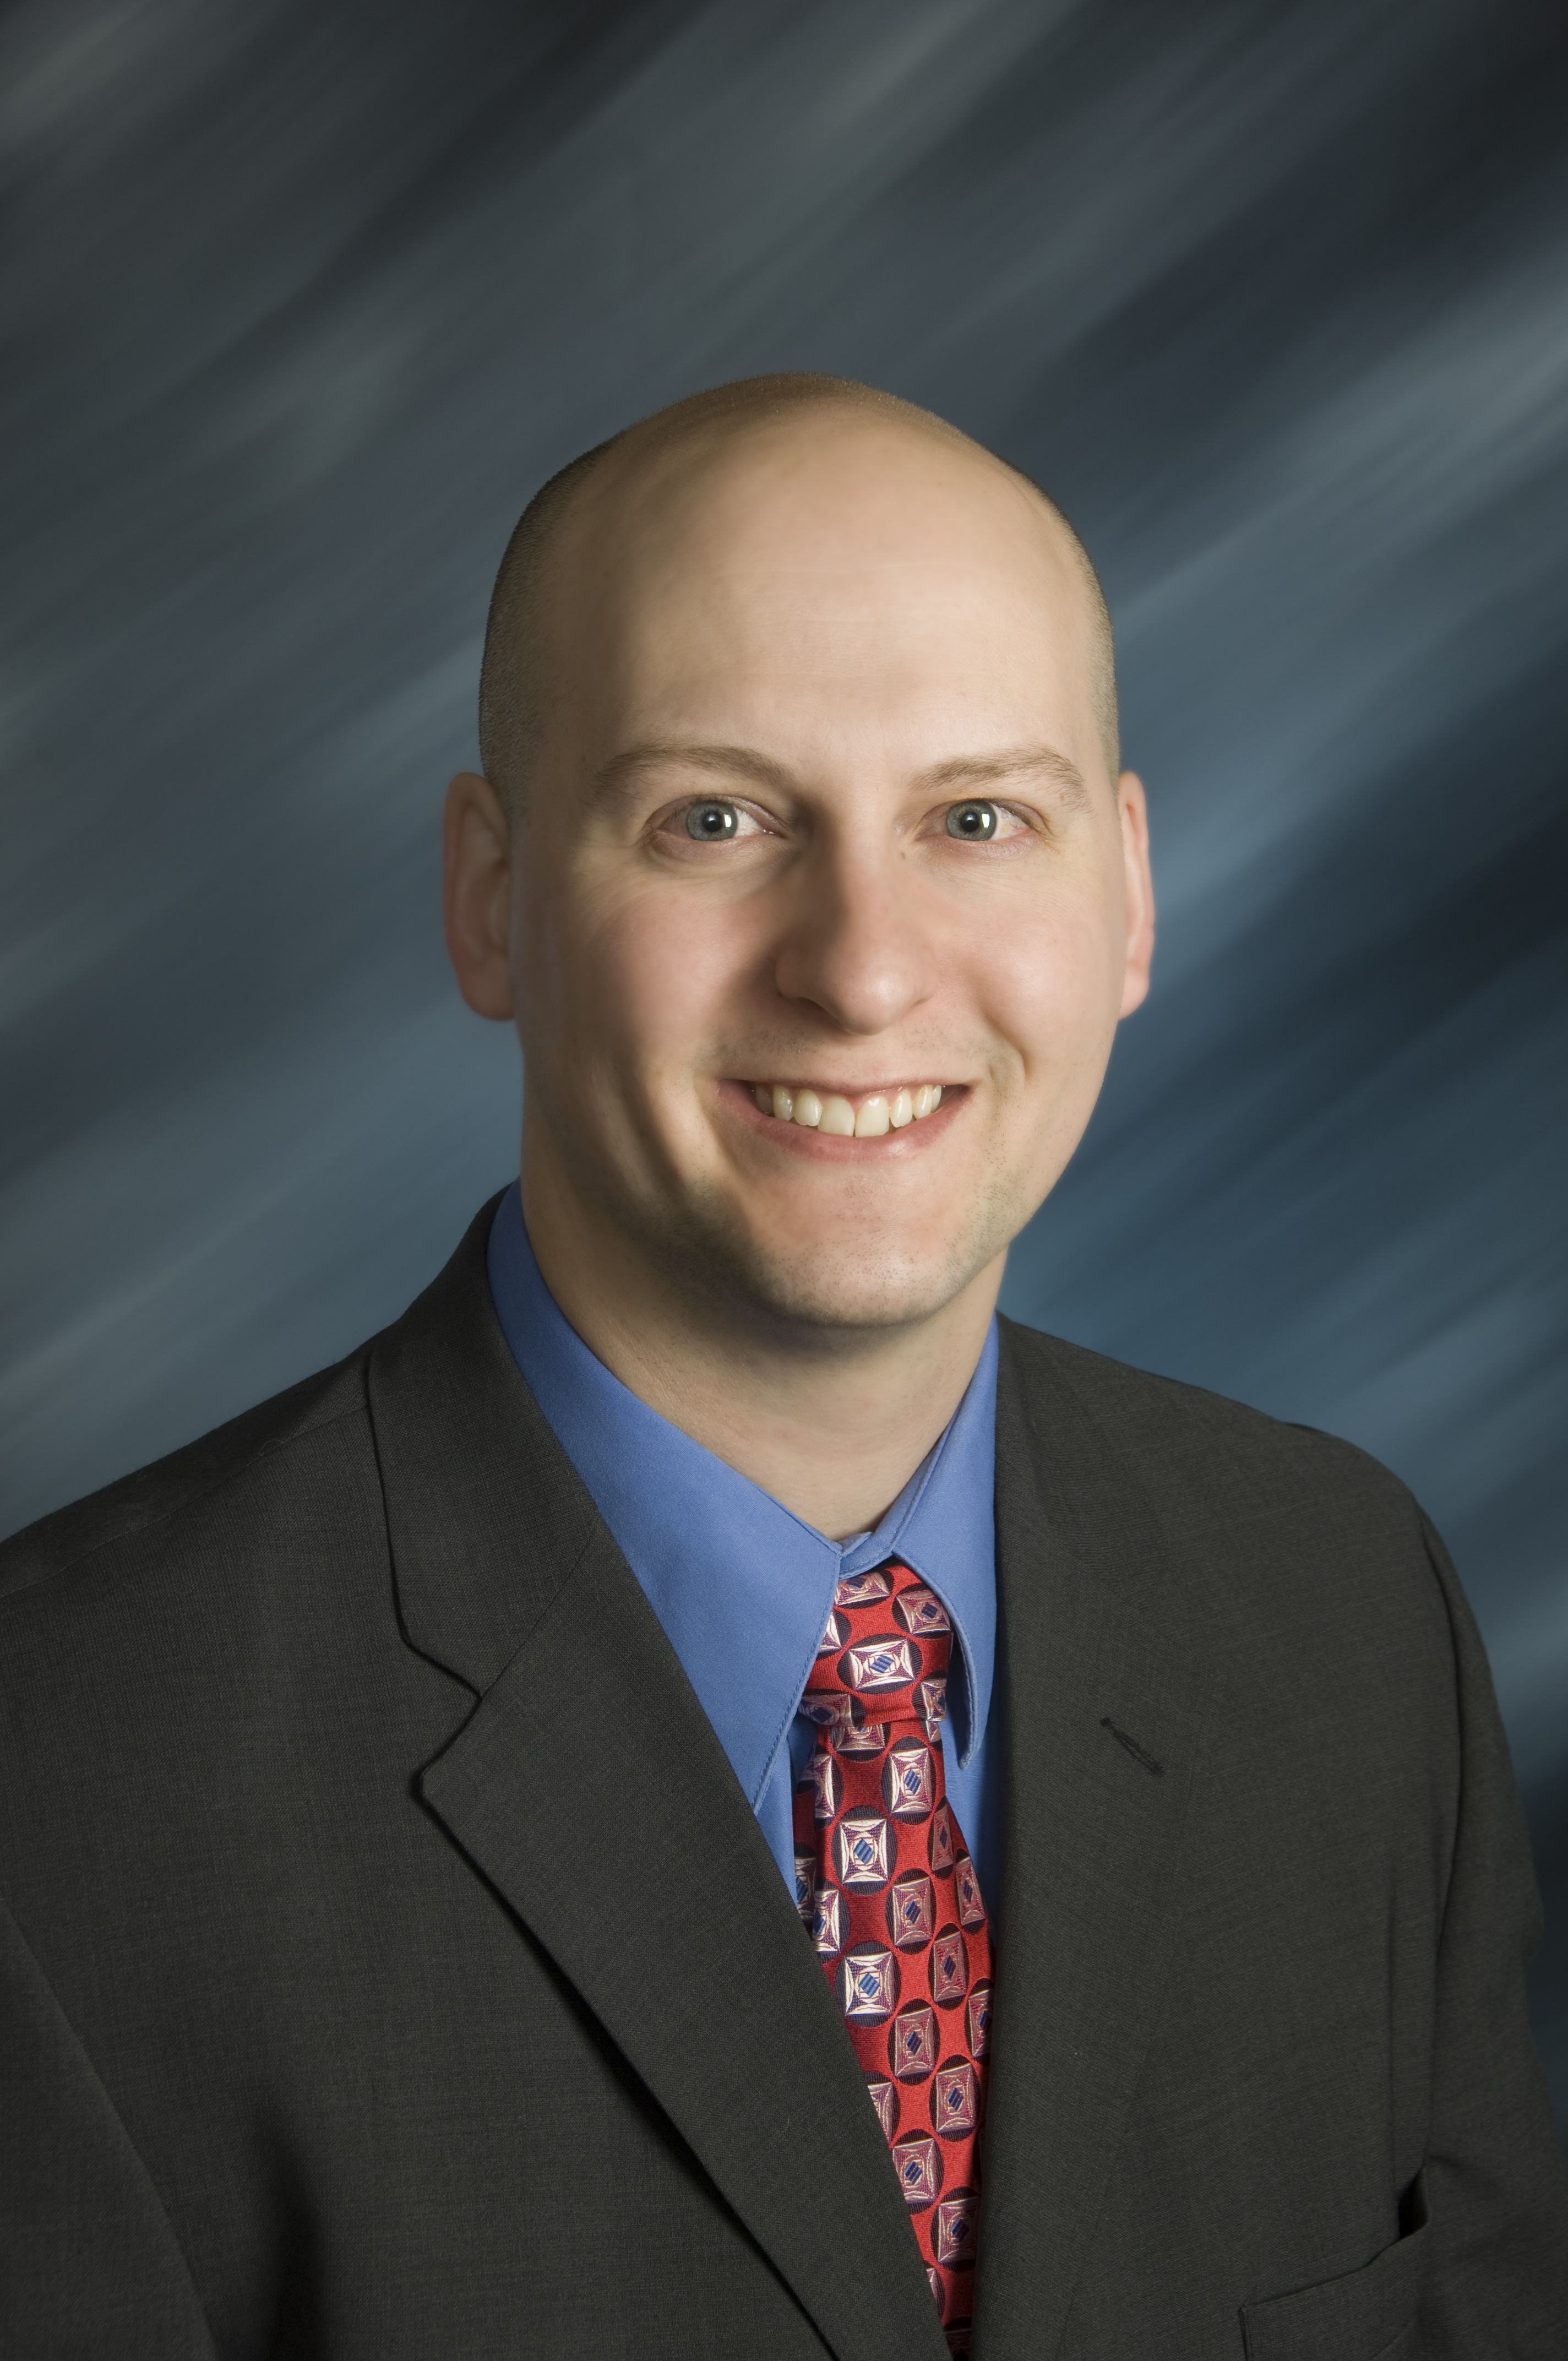 Portrait of Dr. Jason Sheffler, D.O.